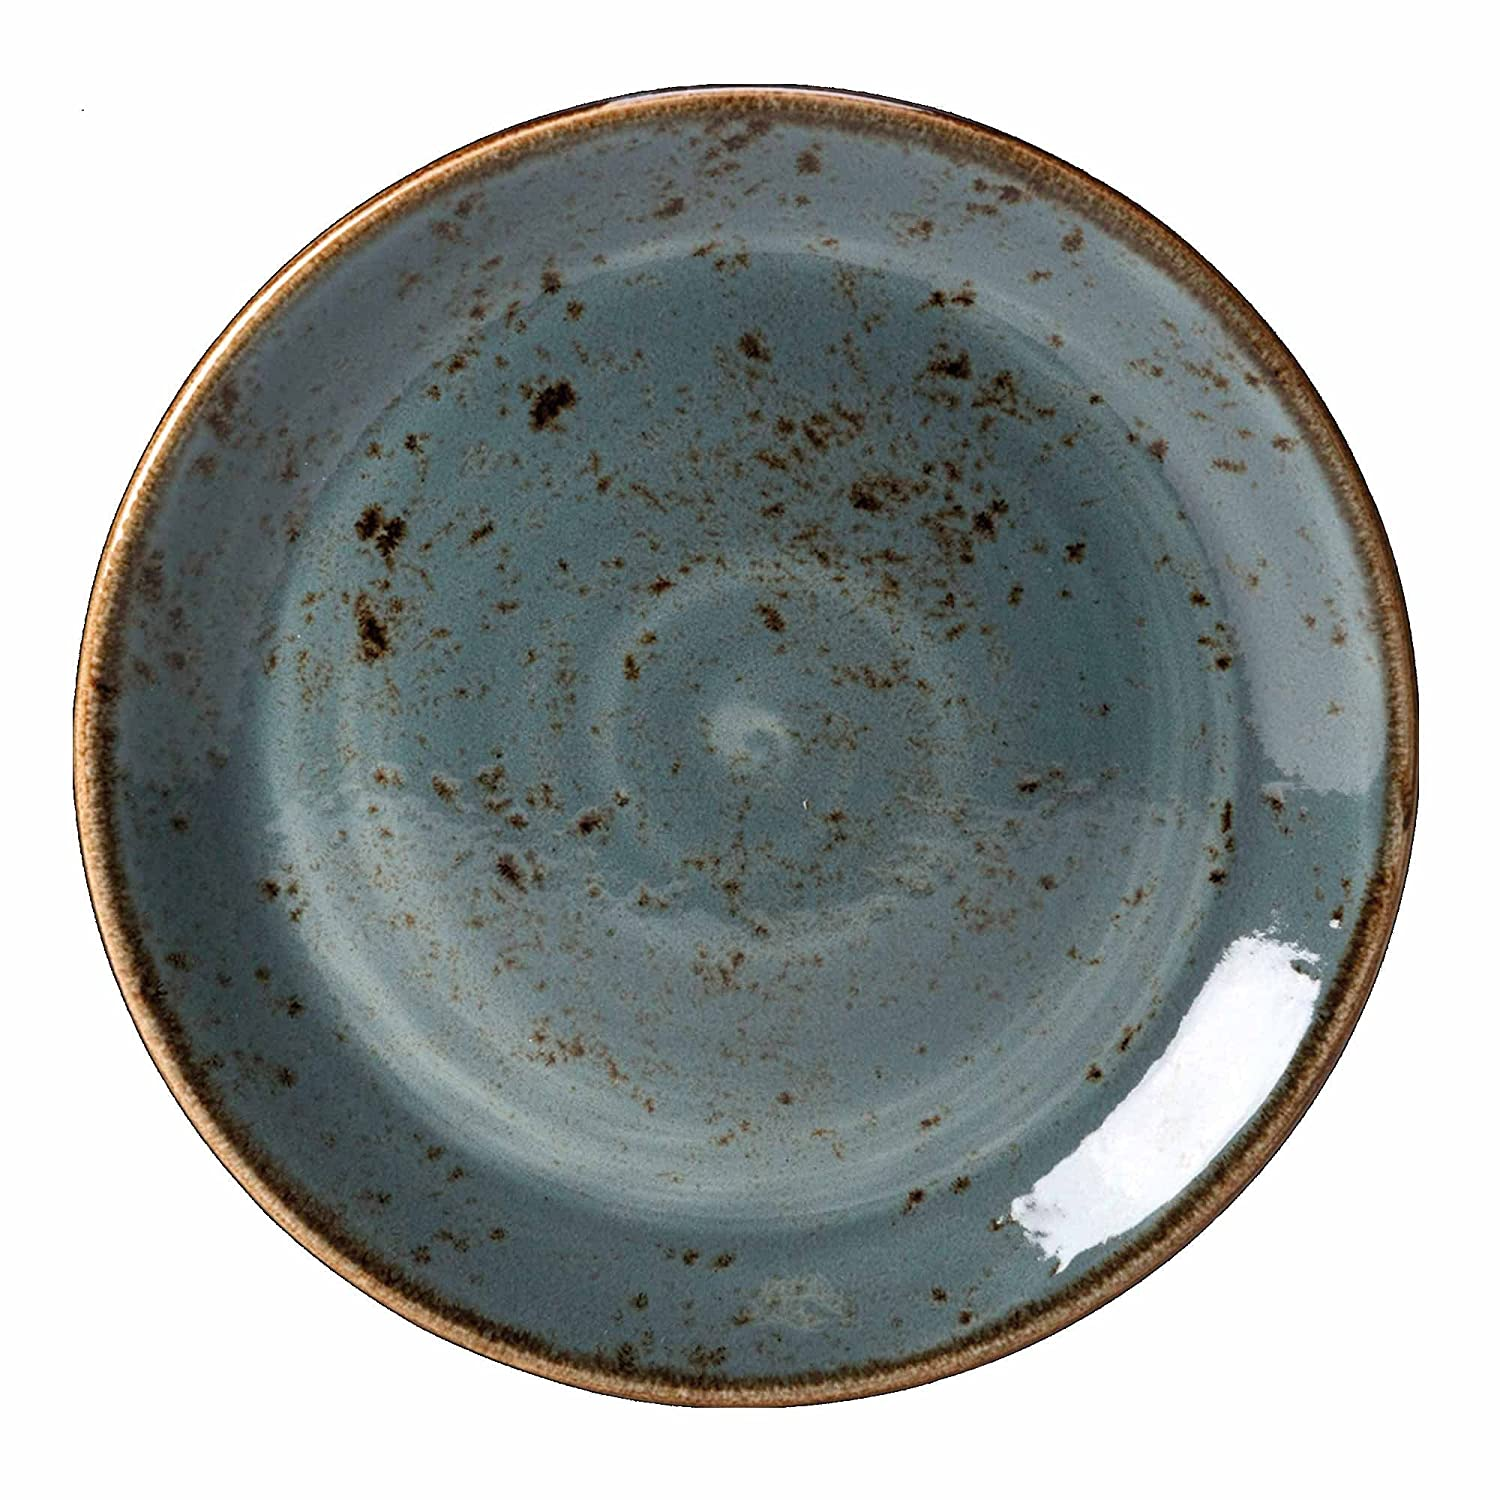 Steelite Craft Coupe Plate Blue 6 /15.25cm- Side Plates Plates Vitrified Crockery Tableware Amazon.co.uk Kitchen u0026 Home  sc 1 st  Amazon UK & Steelite Craft Coupe Plate Blue 6